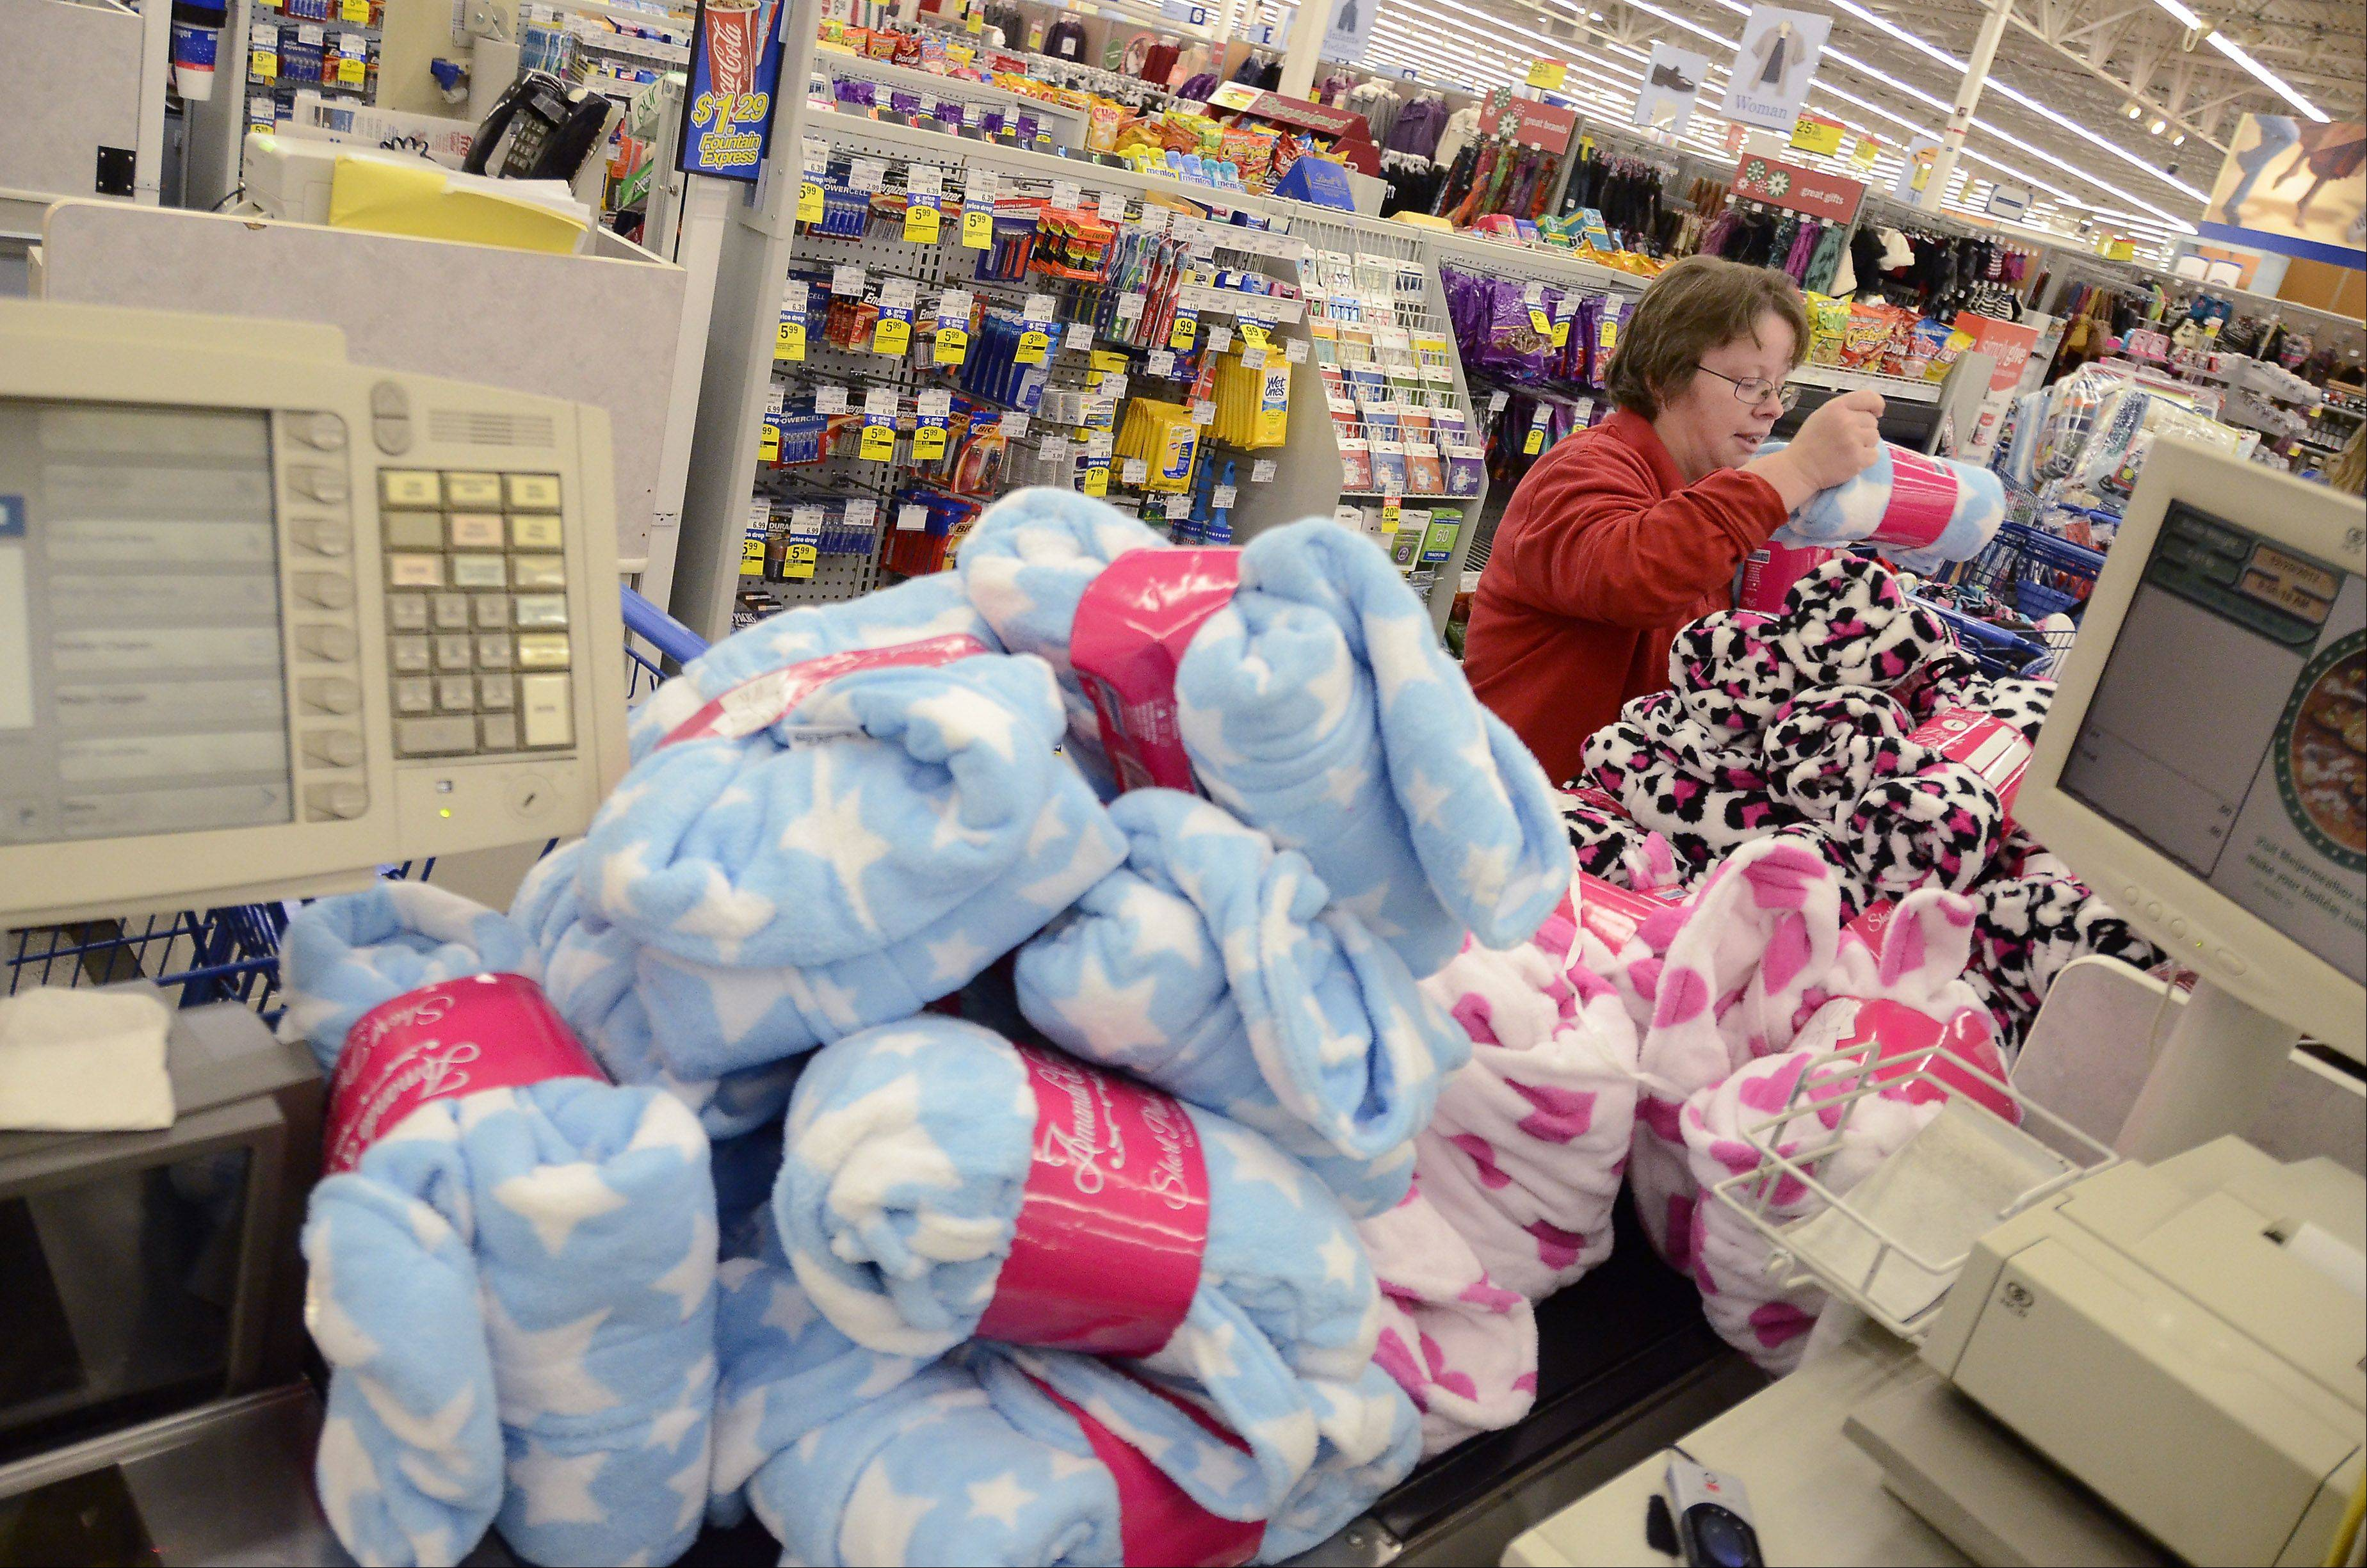 Toys, robes, pajamas and more fill the carts at the Meijer store in Rolling Meadows. They were purchased for children helped by the Daily Herald Hope for the Holidays campaign.